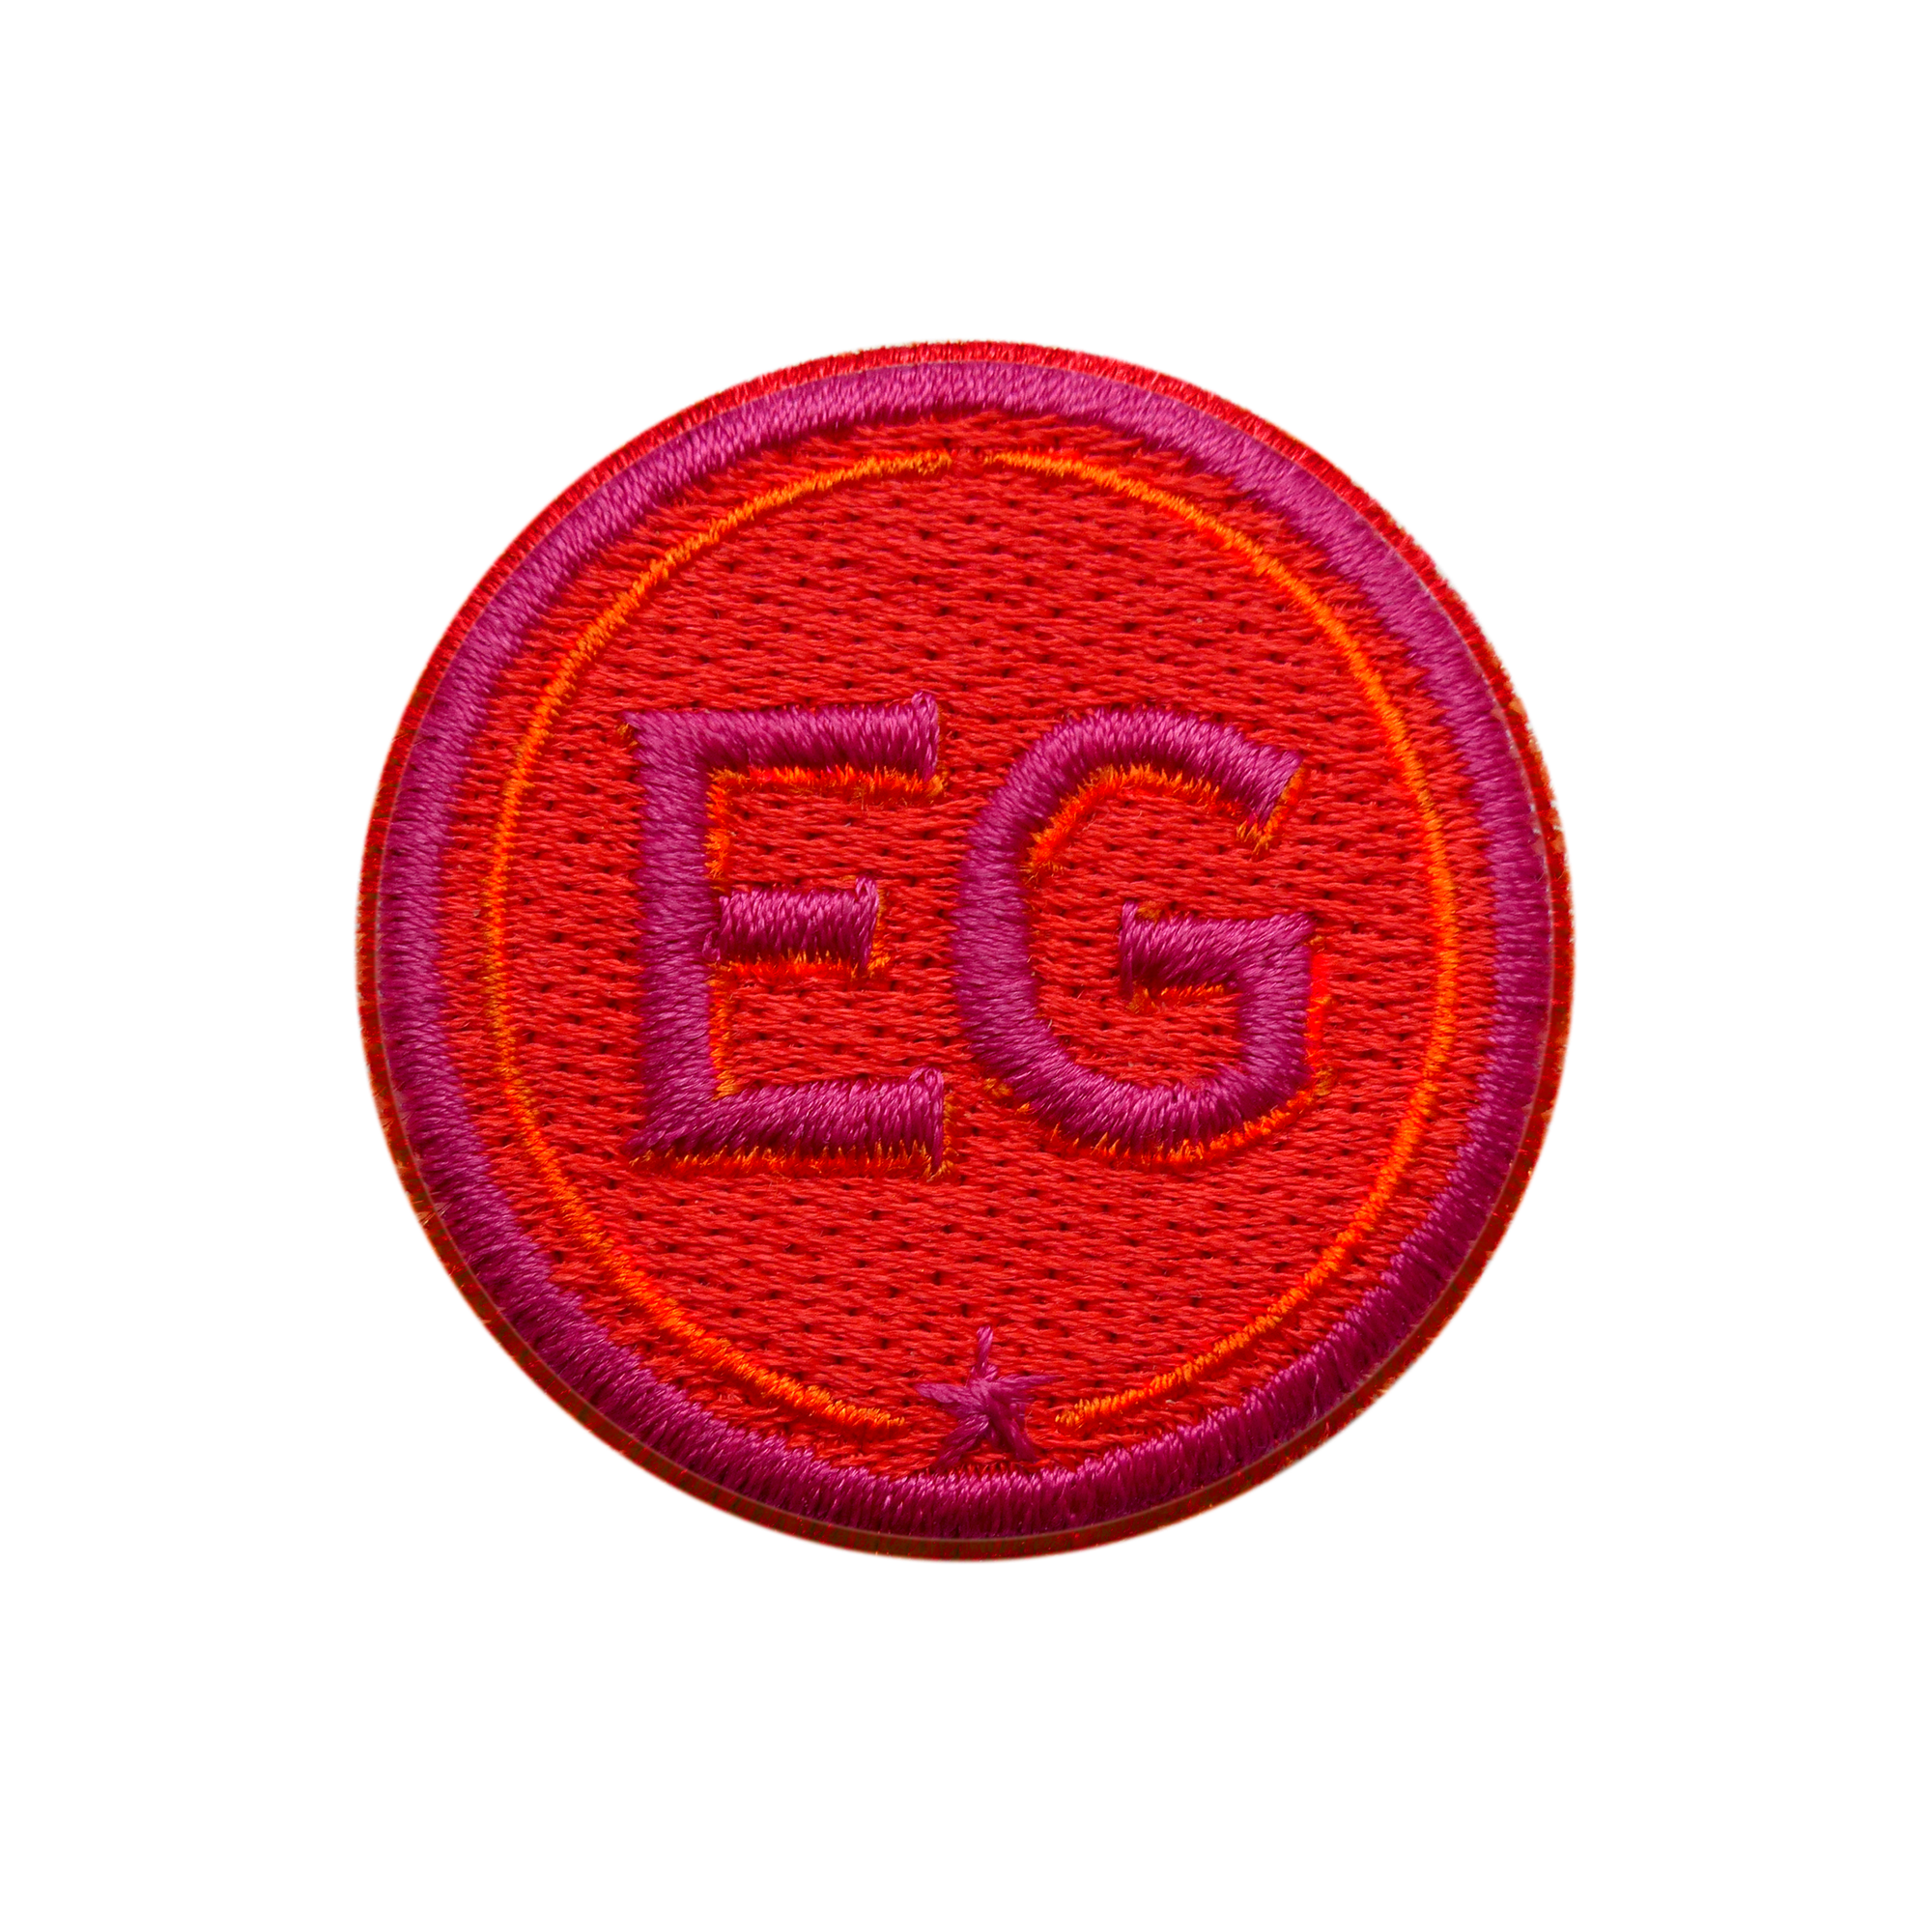 Patch INITIALS · 4cm · red/pink· customizable